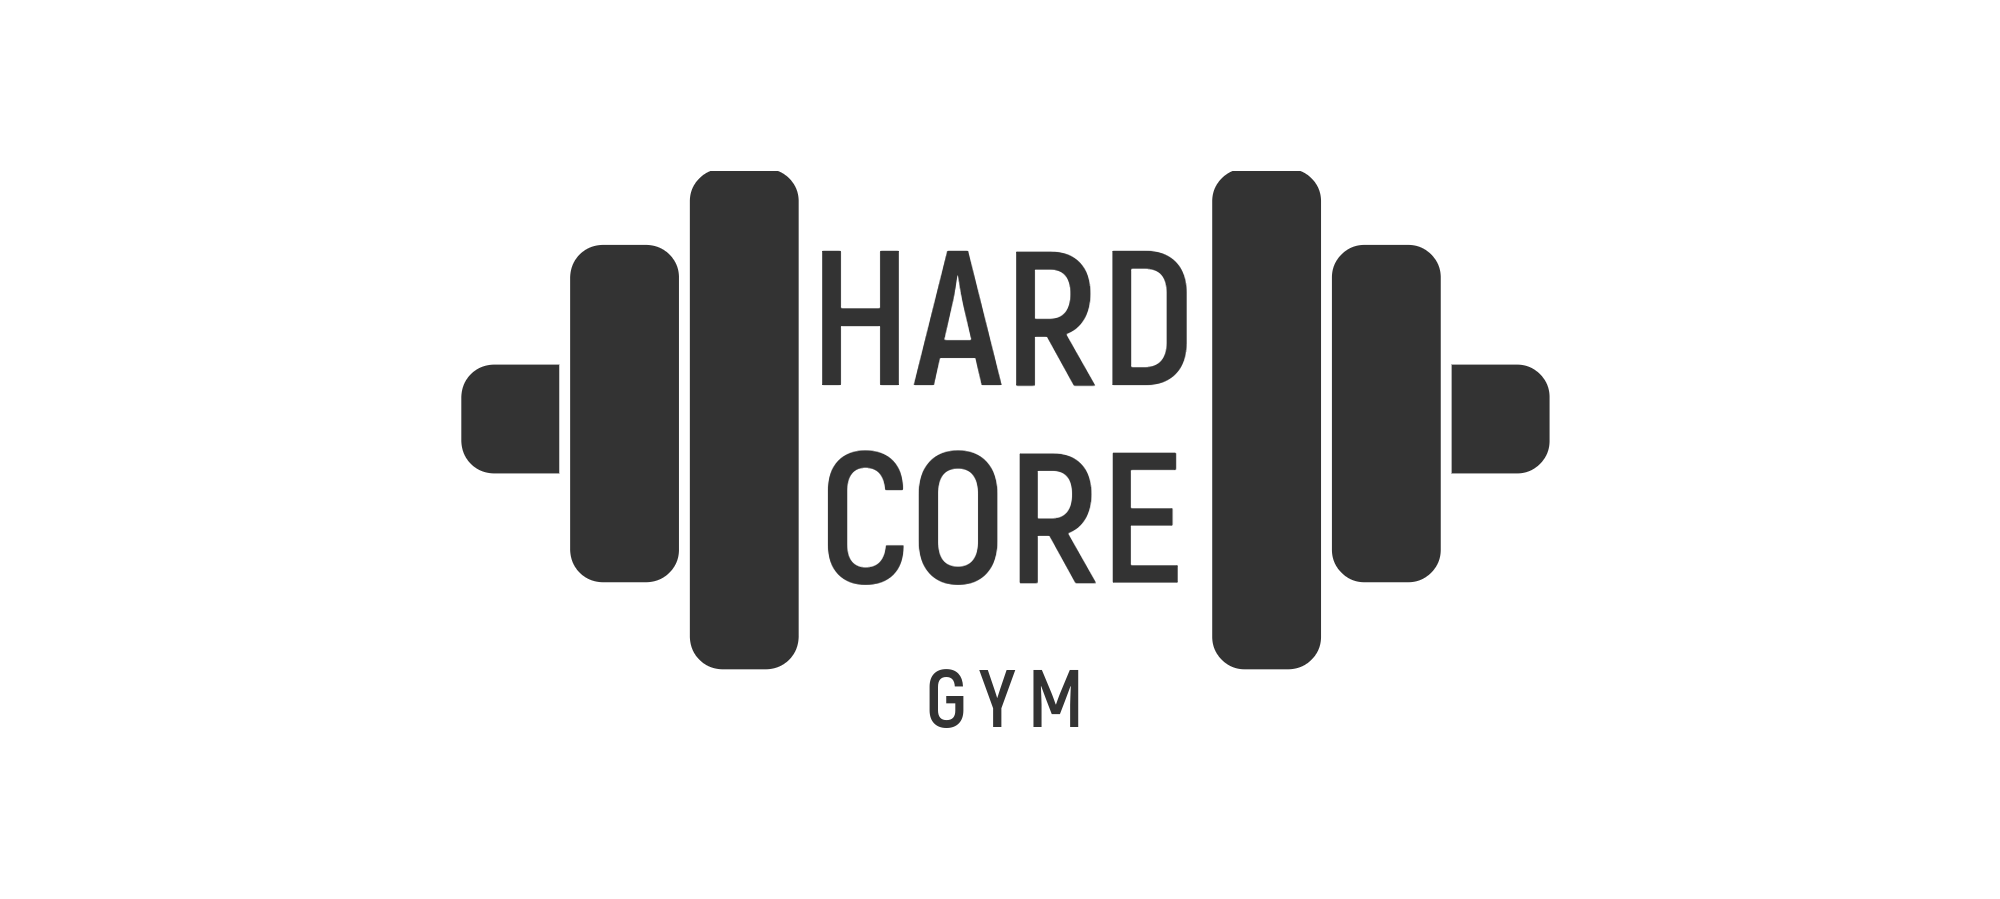 Hard Core Gym Logaster logo